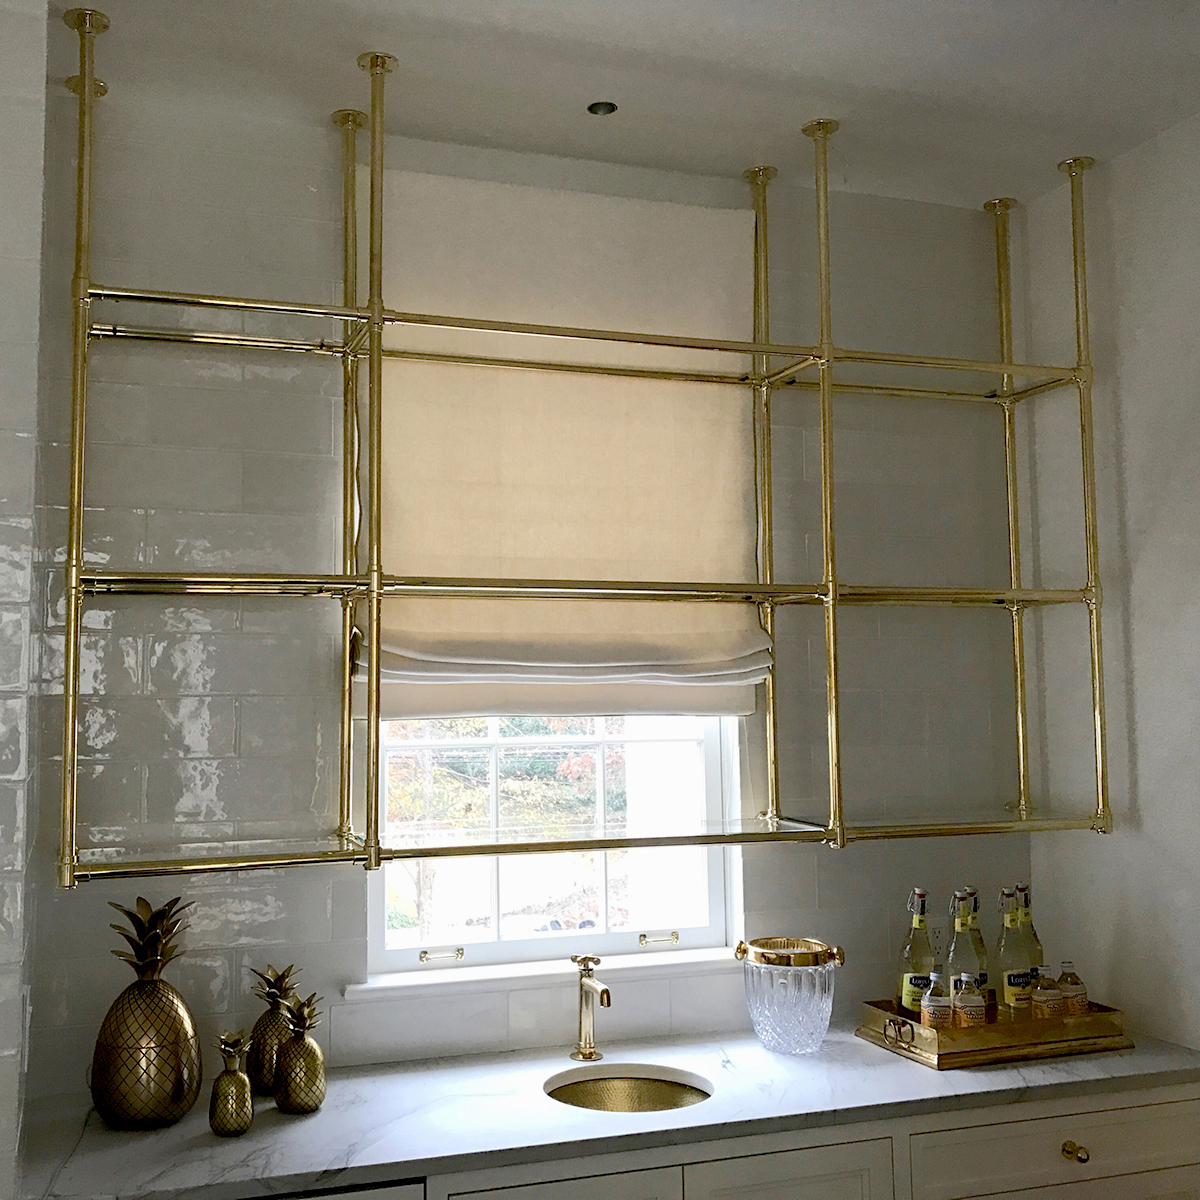 Beau Custom Brass And Glass Kitchen Shelving  Karpaty Cabinets, Inc. GA